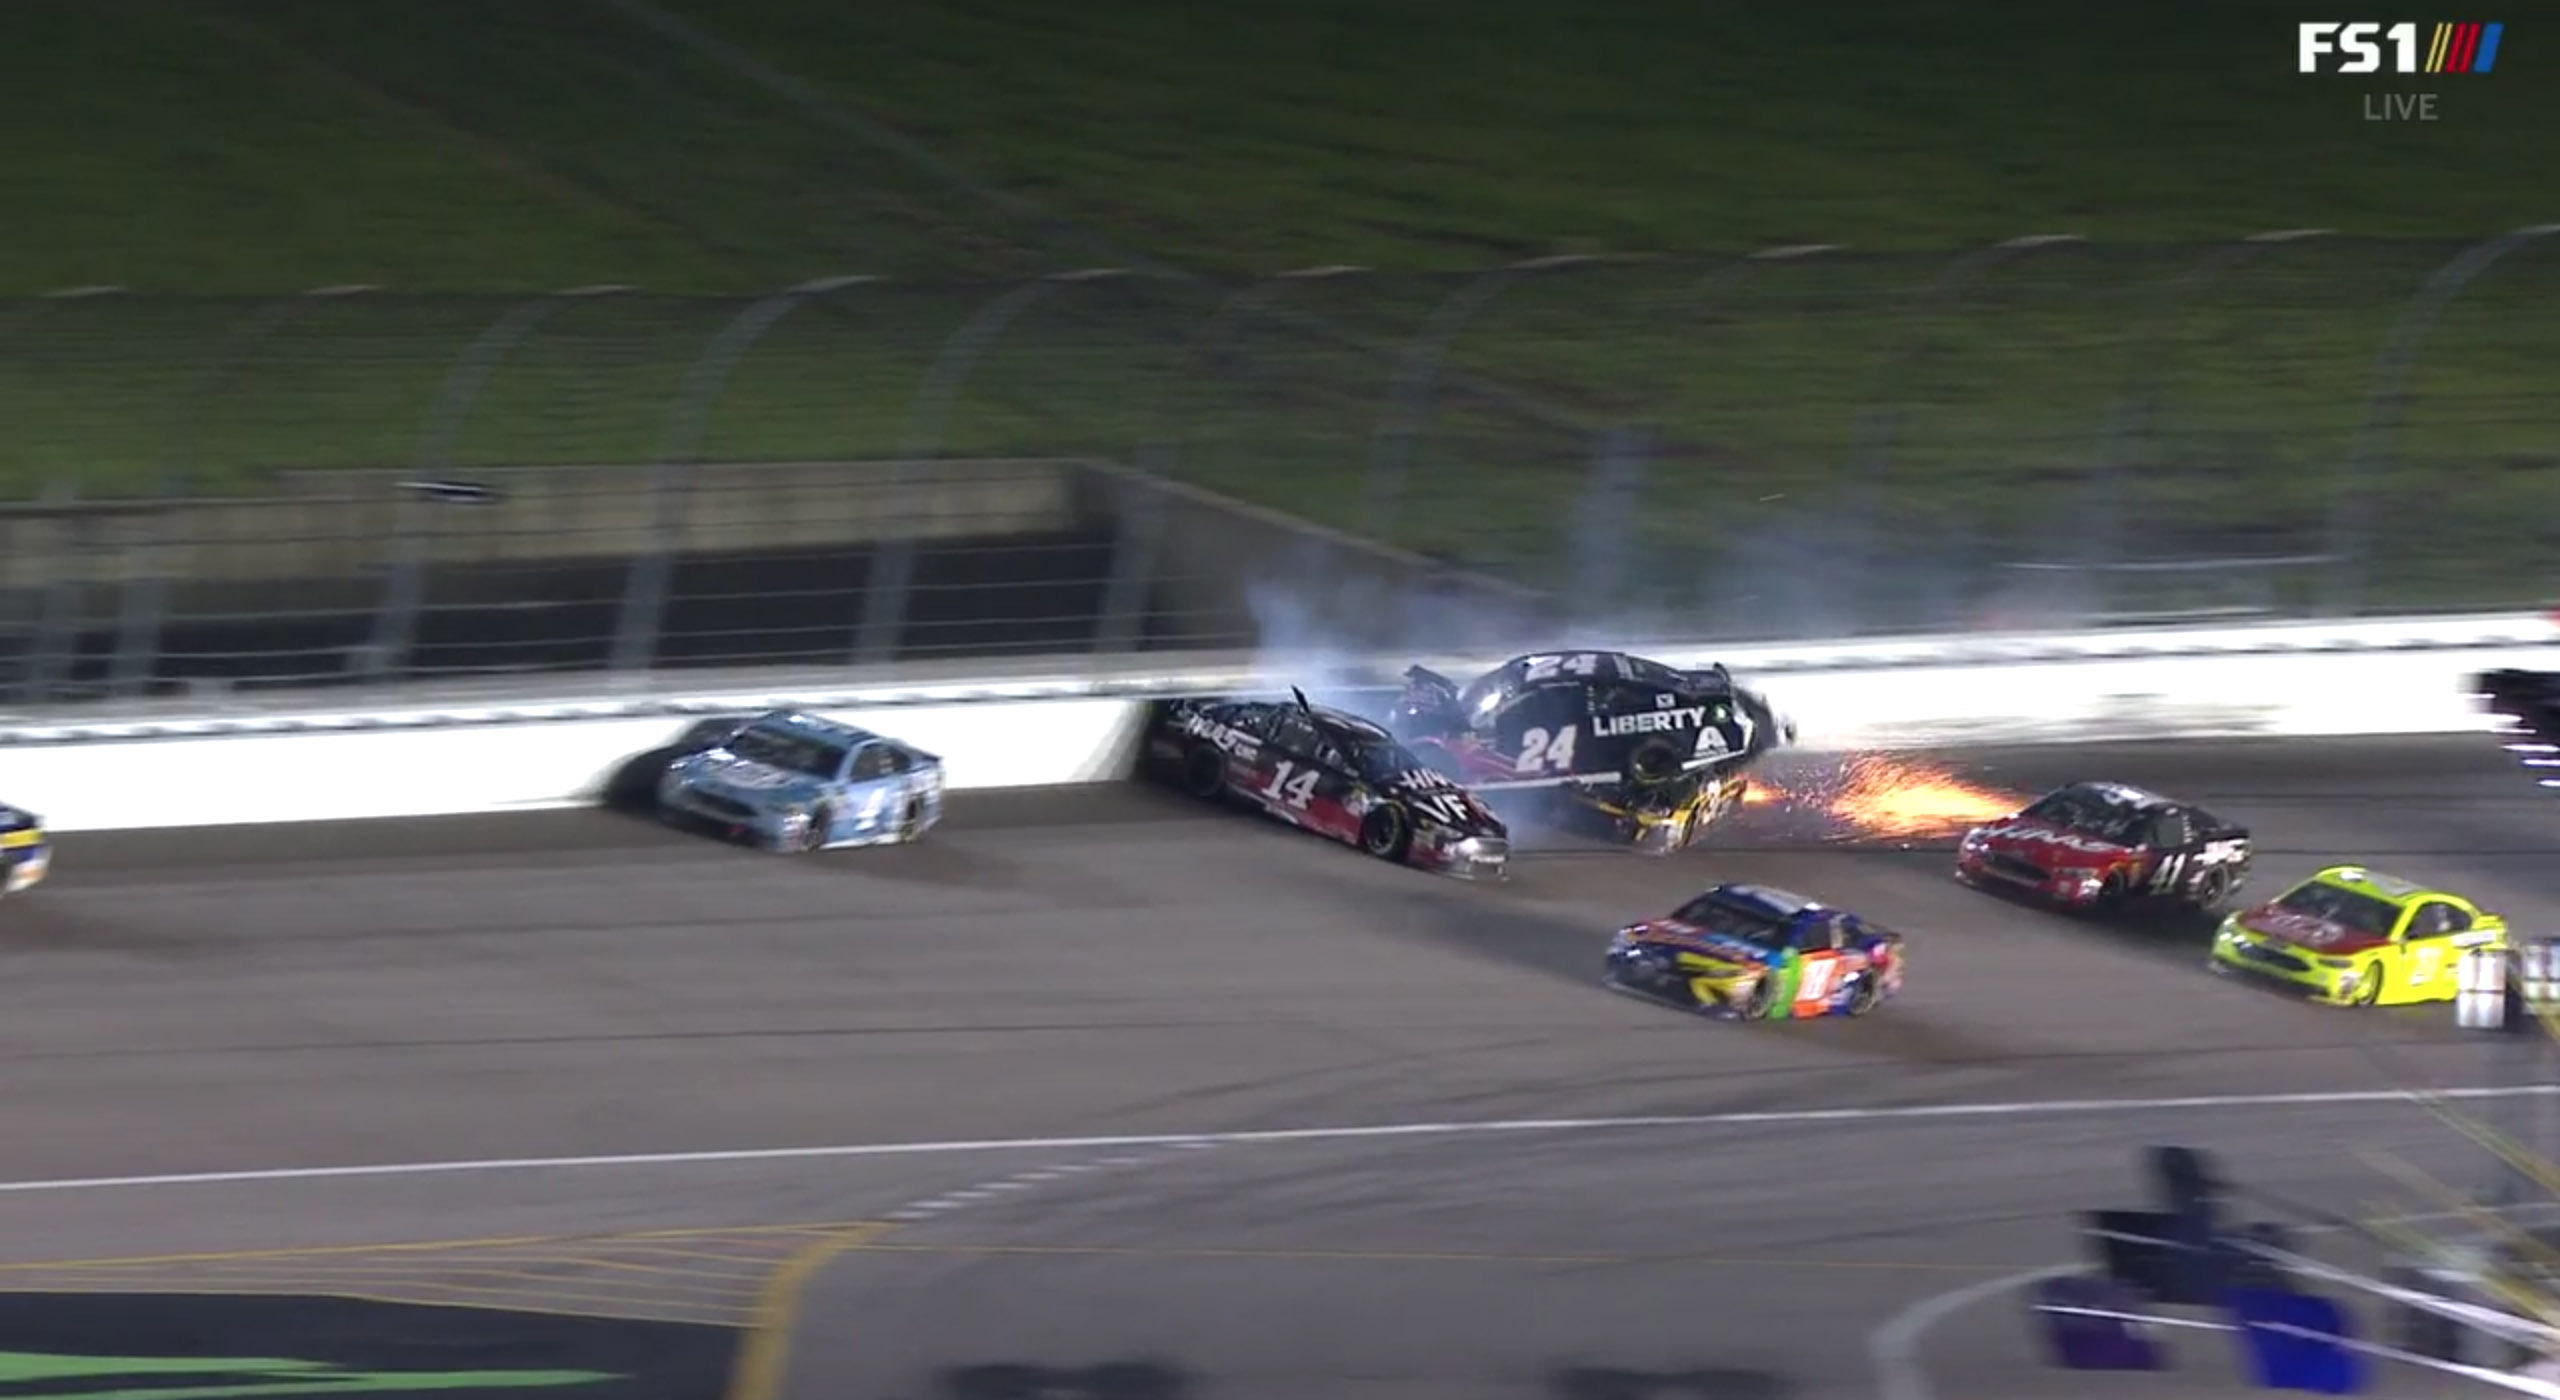 William Byron and Clint Bowyer crash at Kansas Speedway